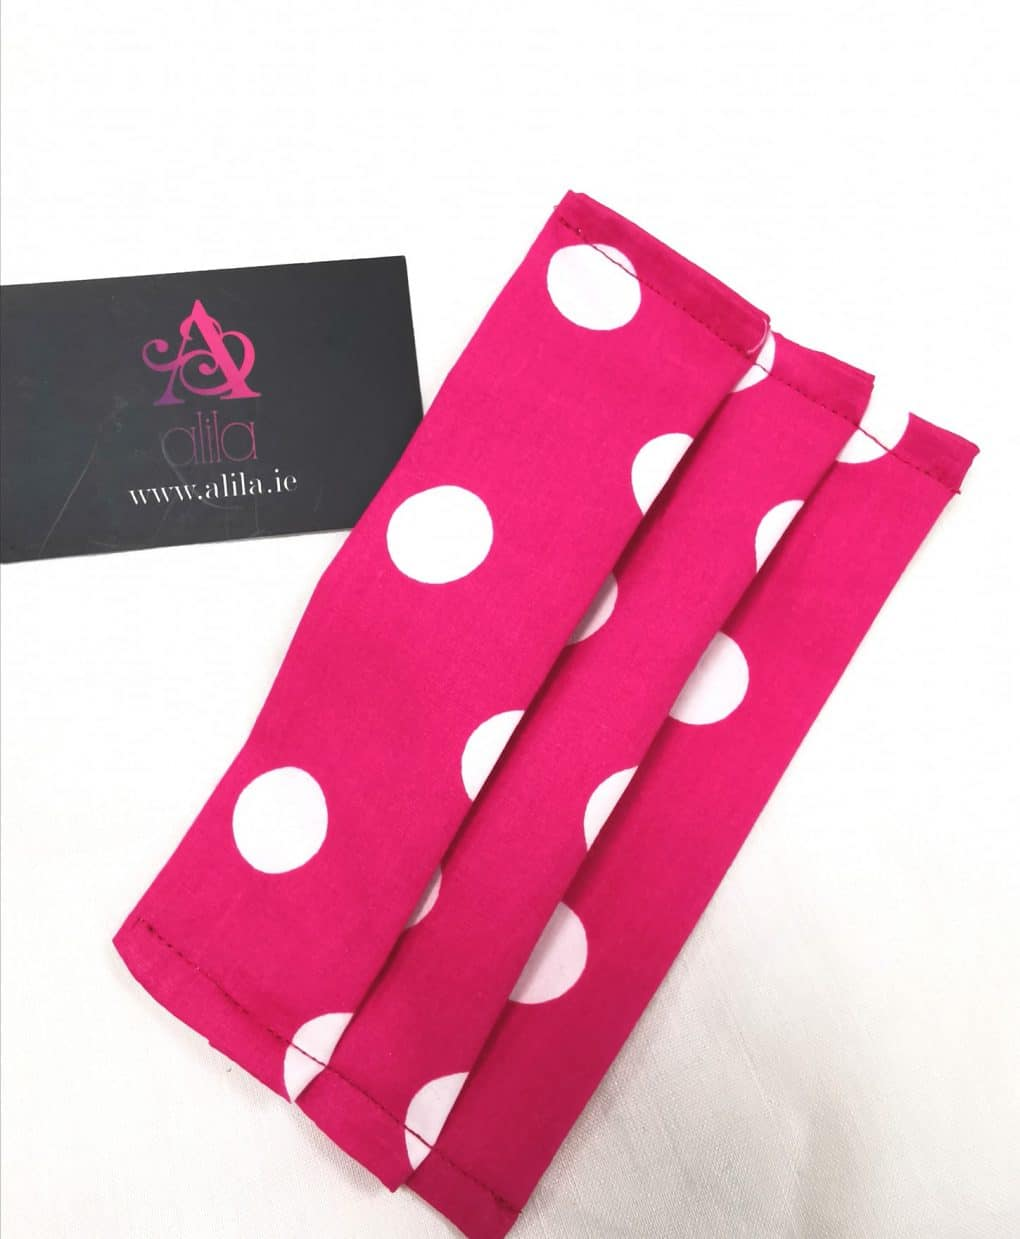 Polka dot face mask Alila